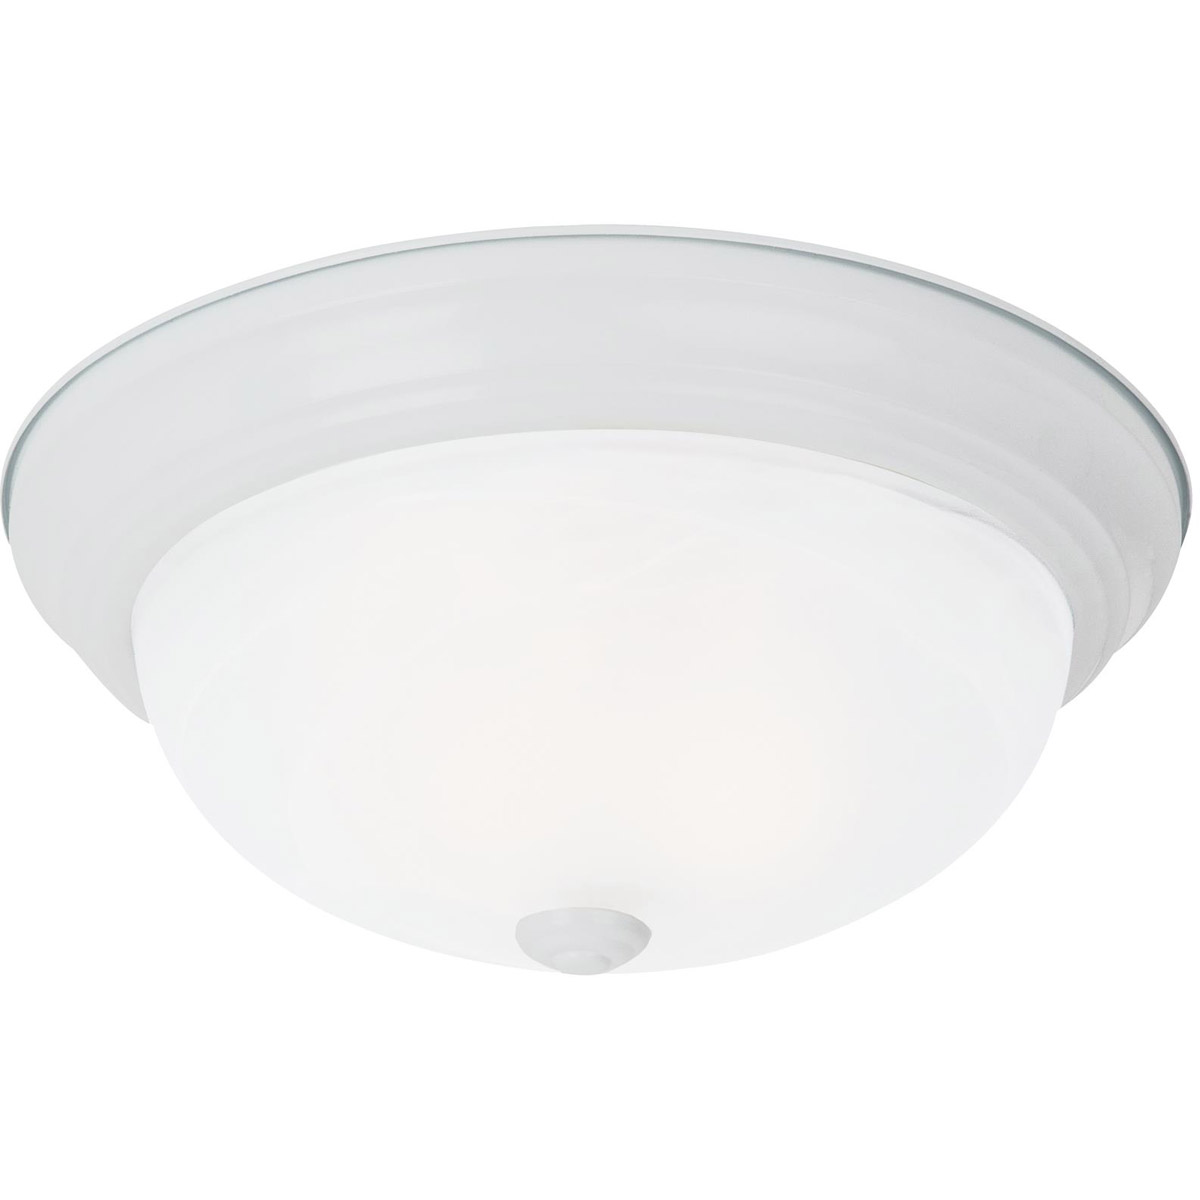 Sea Gull Lighting Windgate 3 Light Flush Mount in White 75943-15